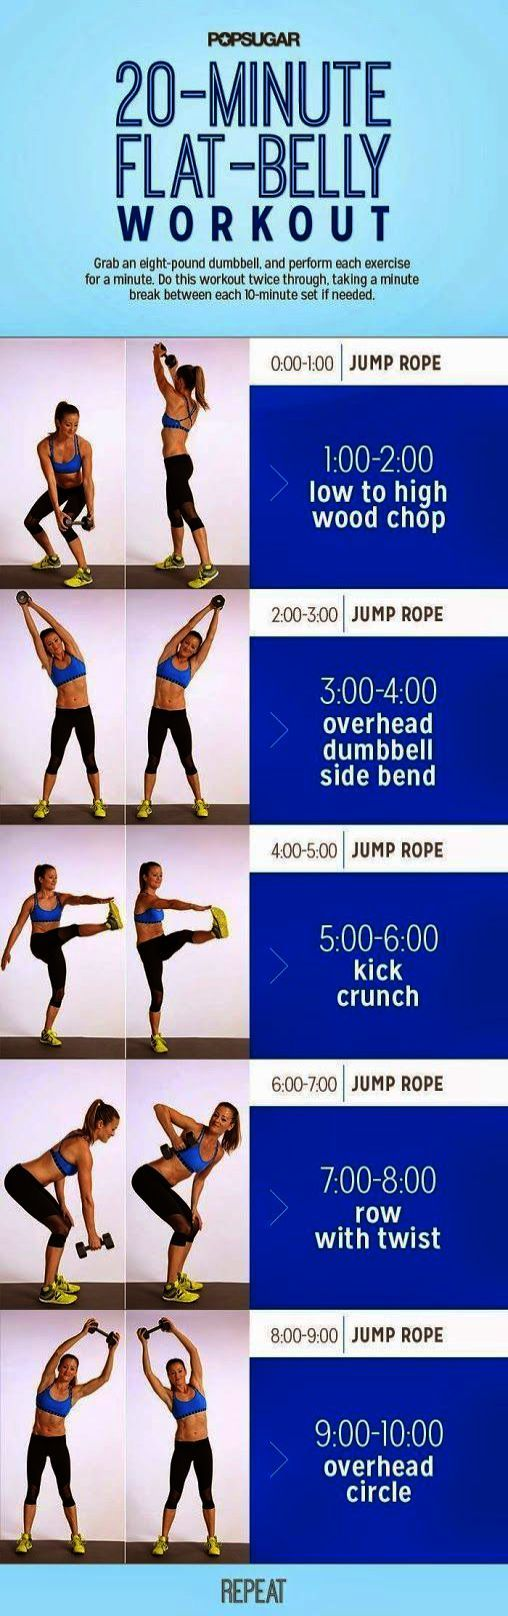 Ab Exercises To Do With Ankle Weights ... Ab Workout For Low Back Pain, Ab Exercises Machine Names #abexercisemachine